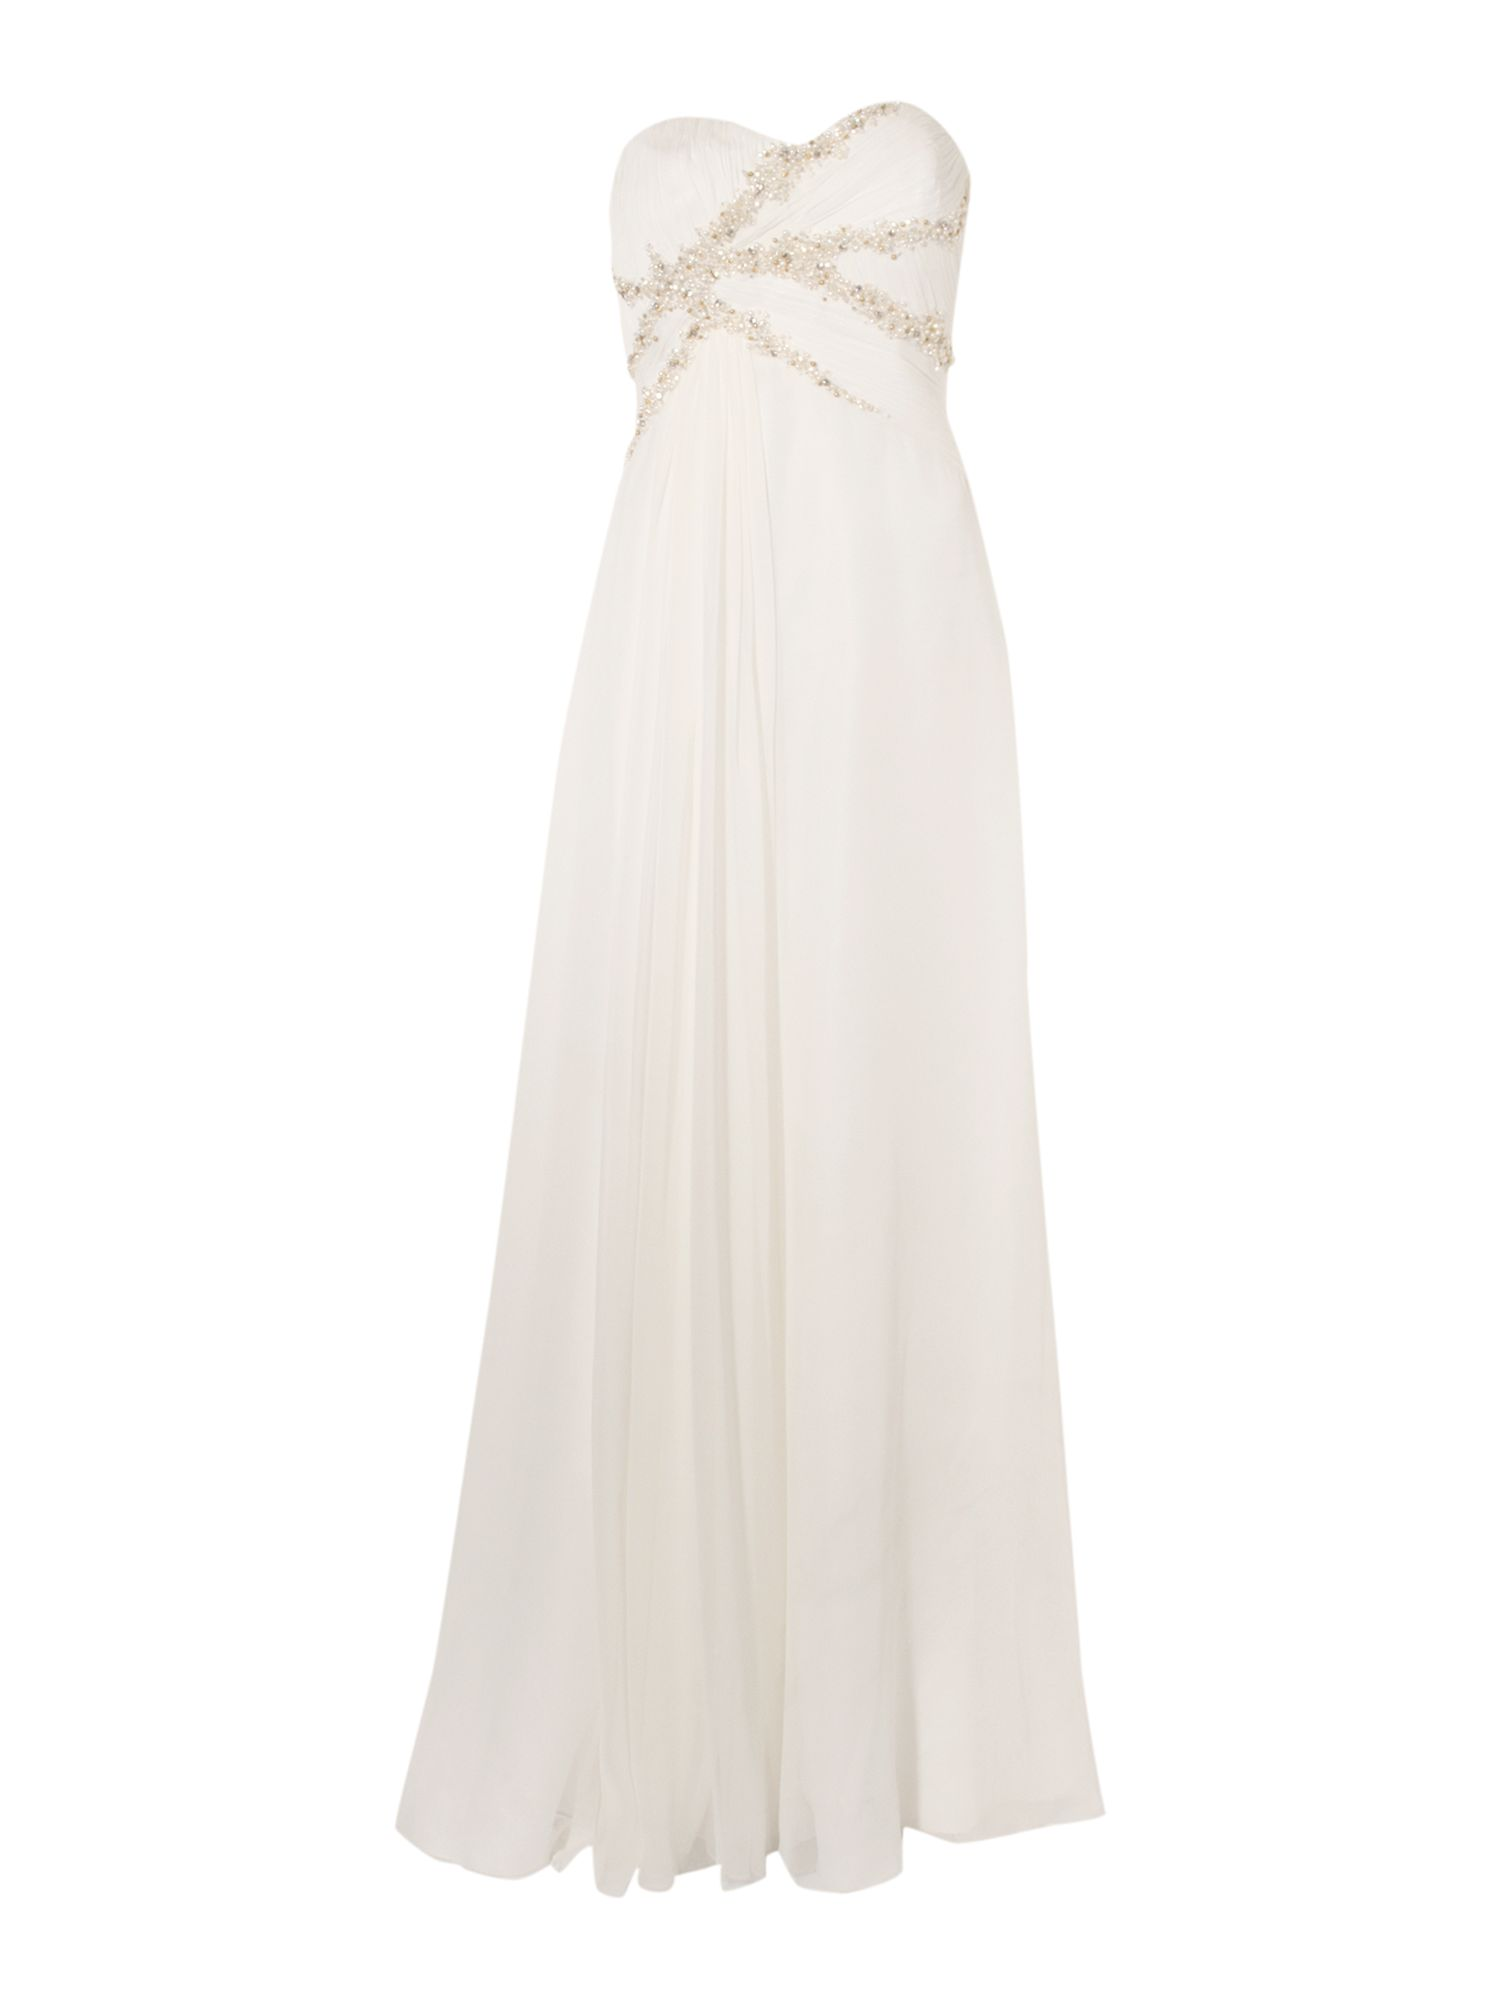 Stacey chiffon pearl beading dress